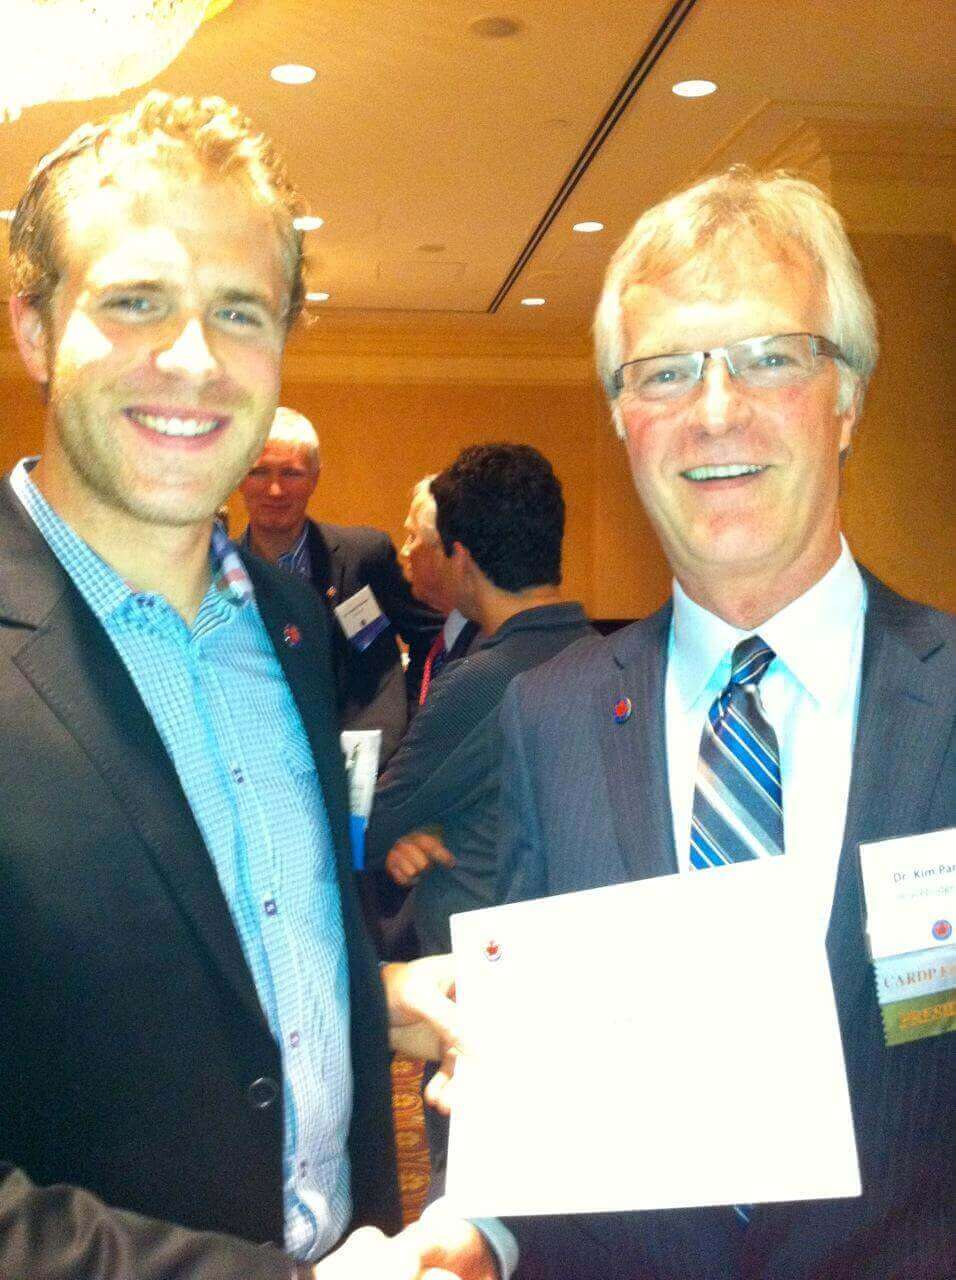 Dr. Seddon Receives his Certificate of Membership to CARDP